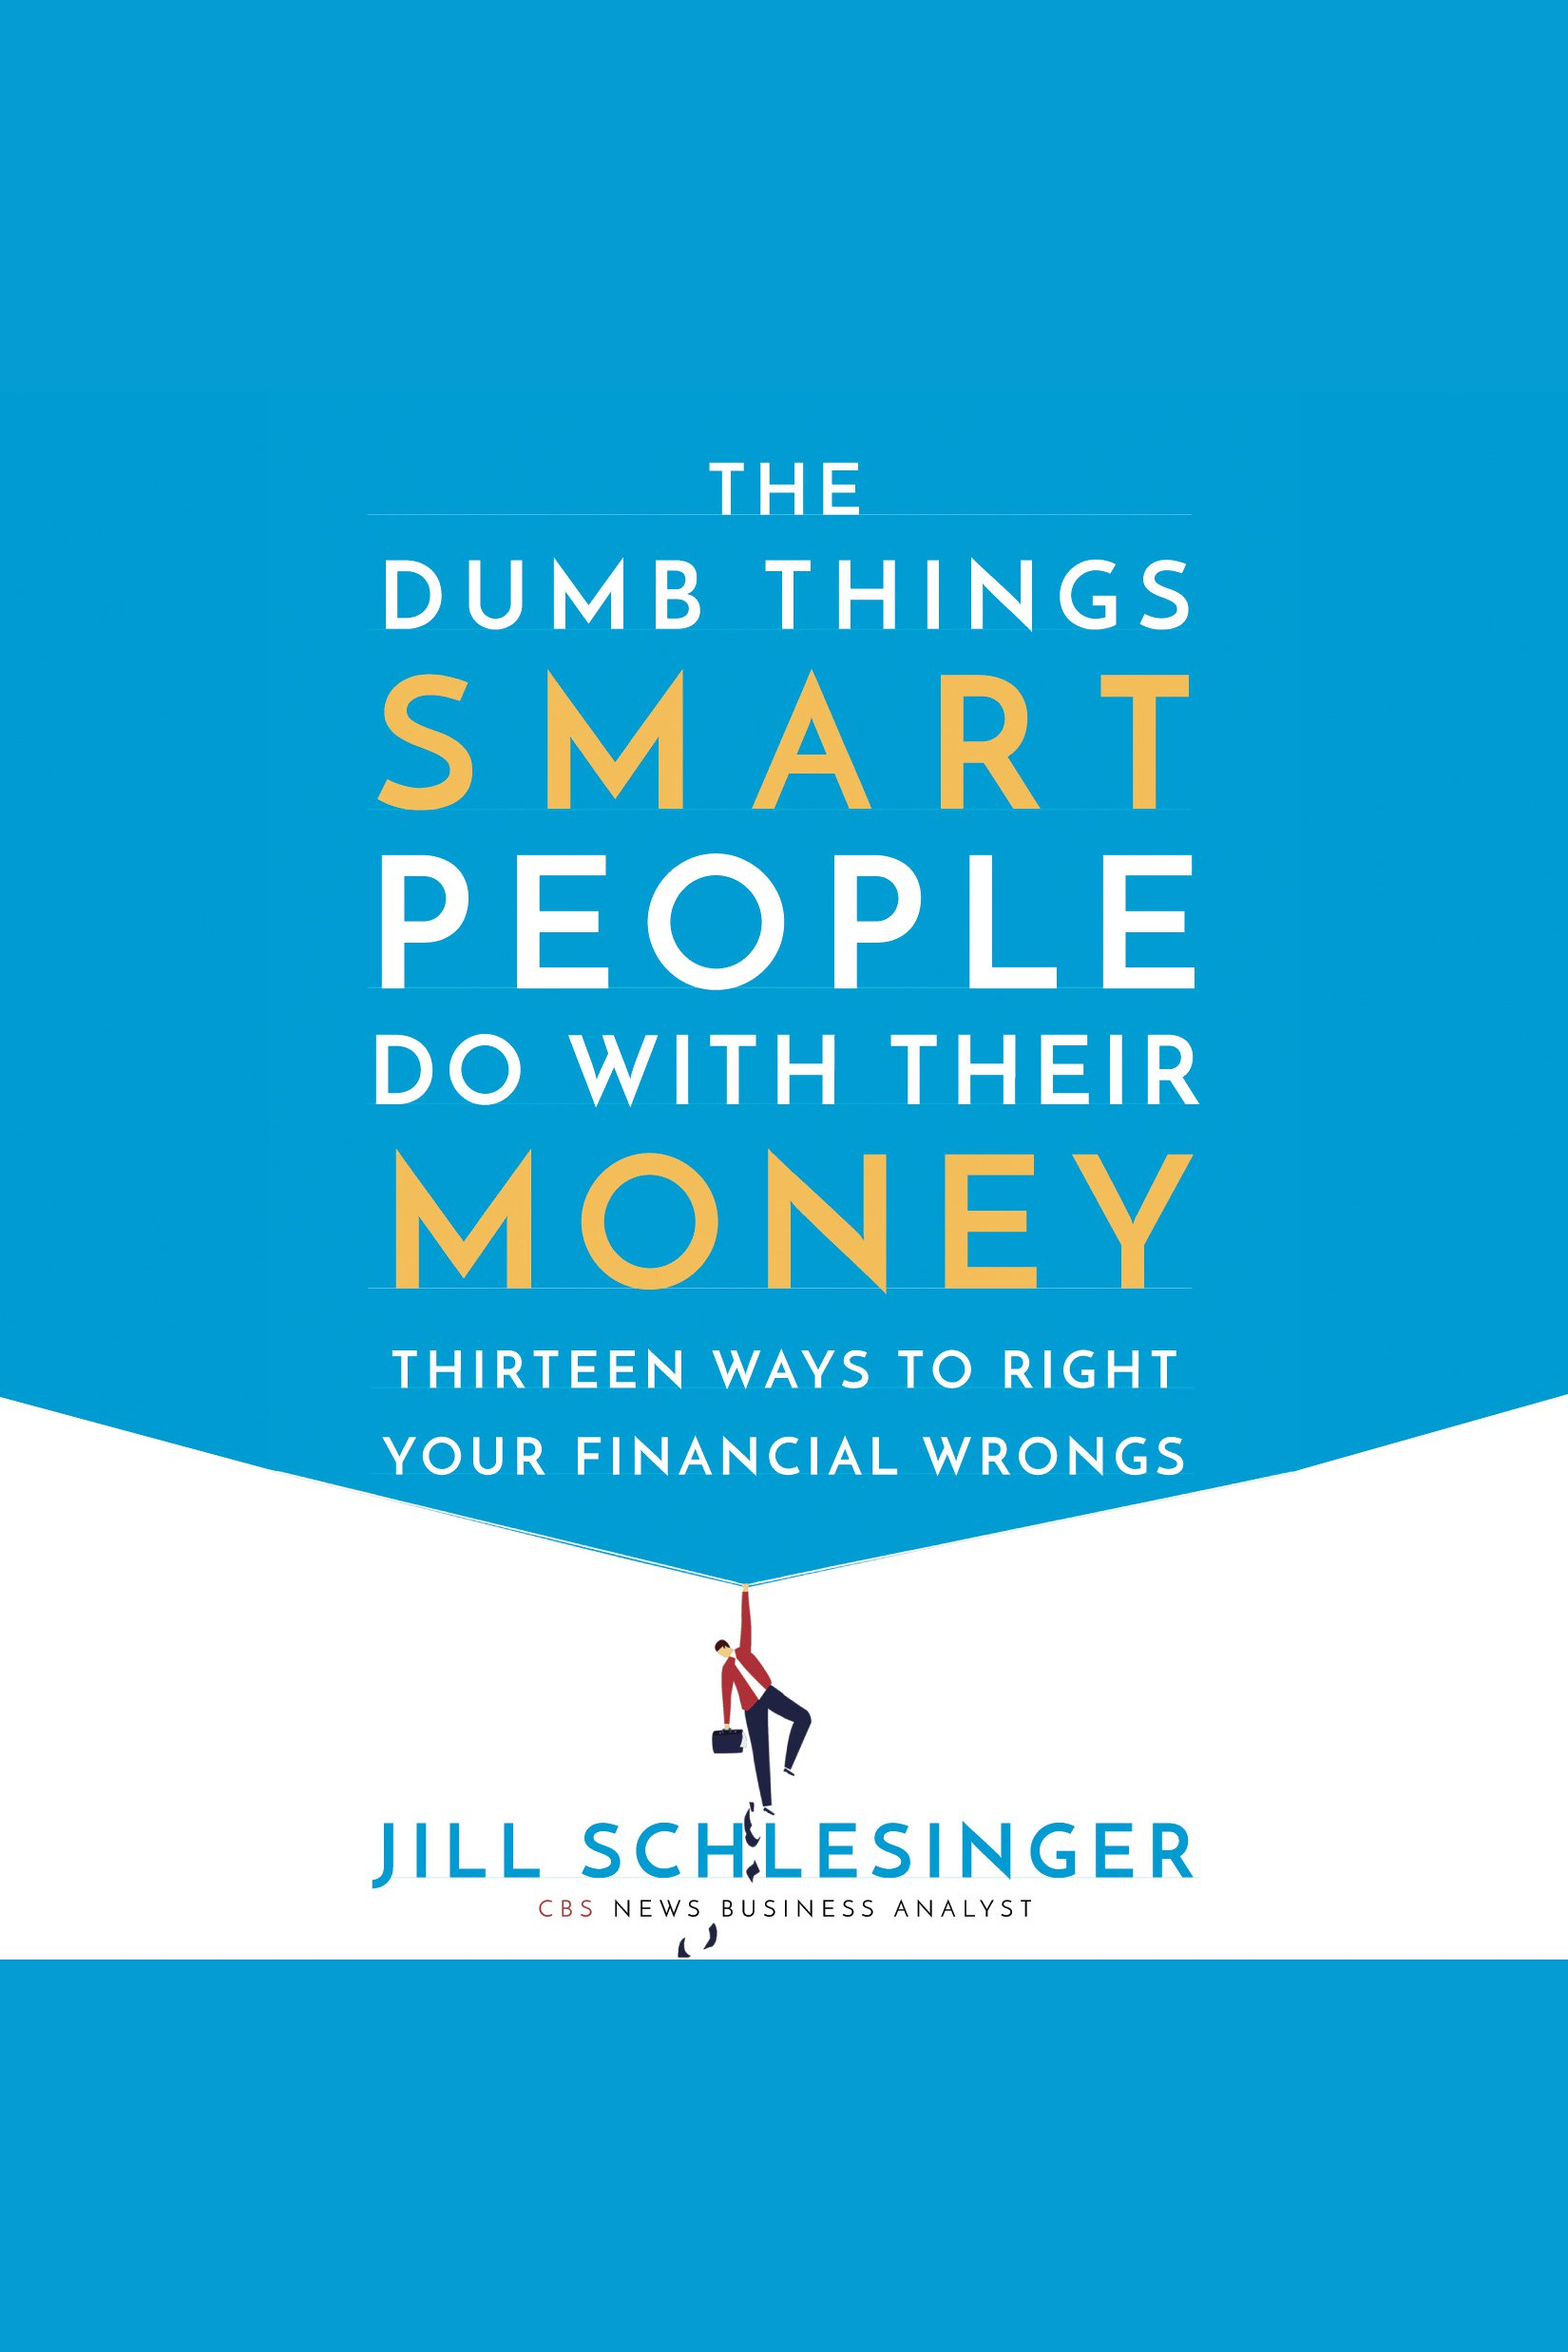 The dumb things smart people do with their money thirteen ways to right your financial wrongs cover image